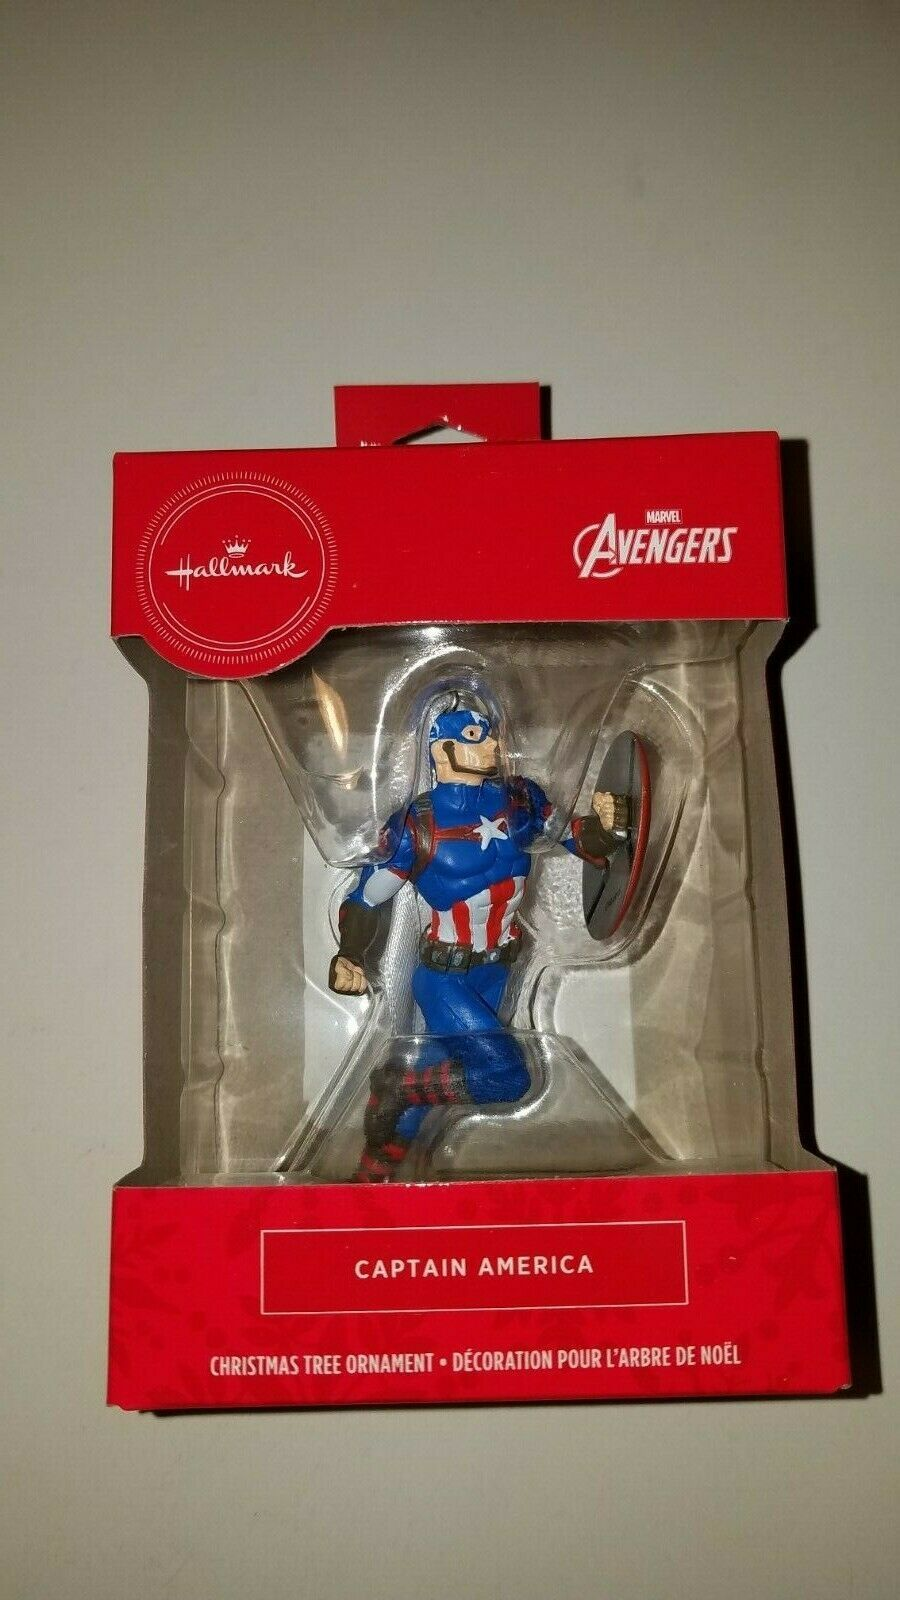 Primary image for Hallmark ornament marvel avengers captain america new in box stocking stuffer